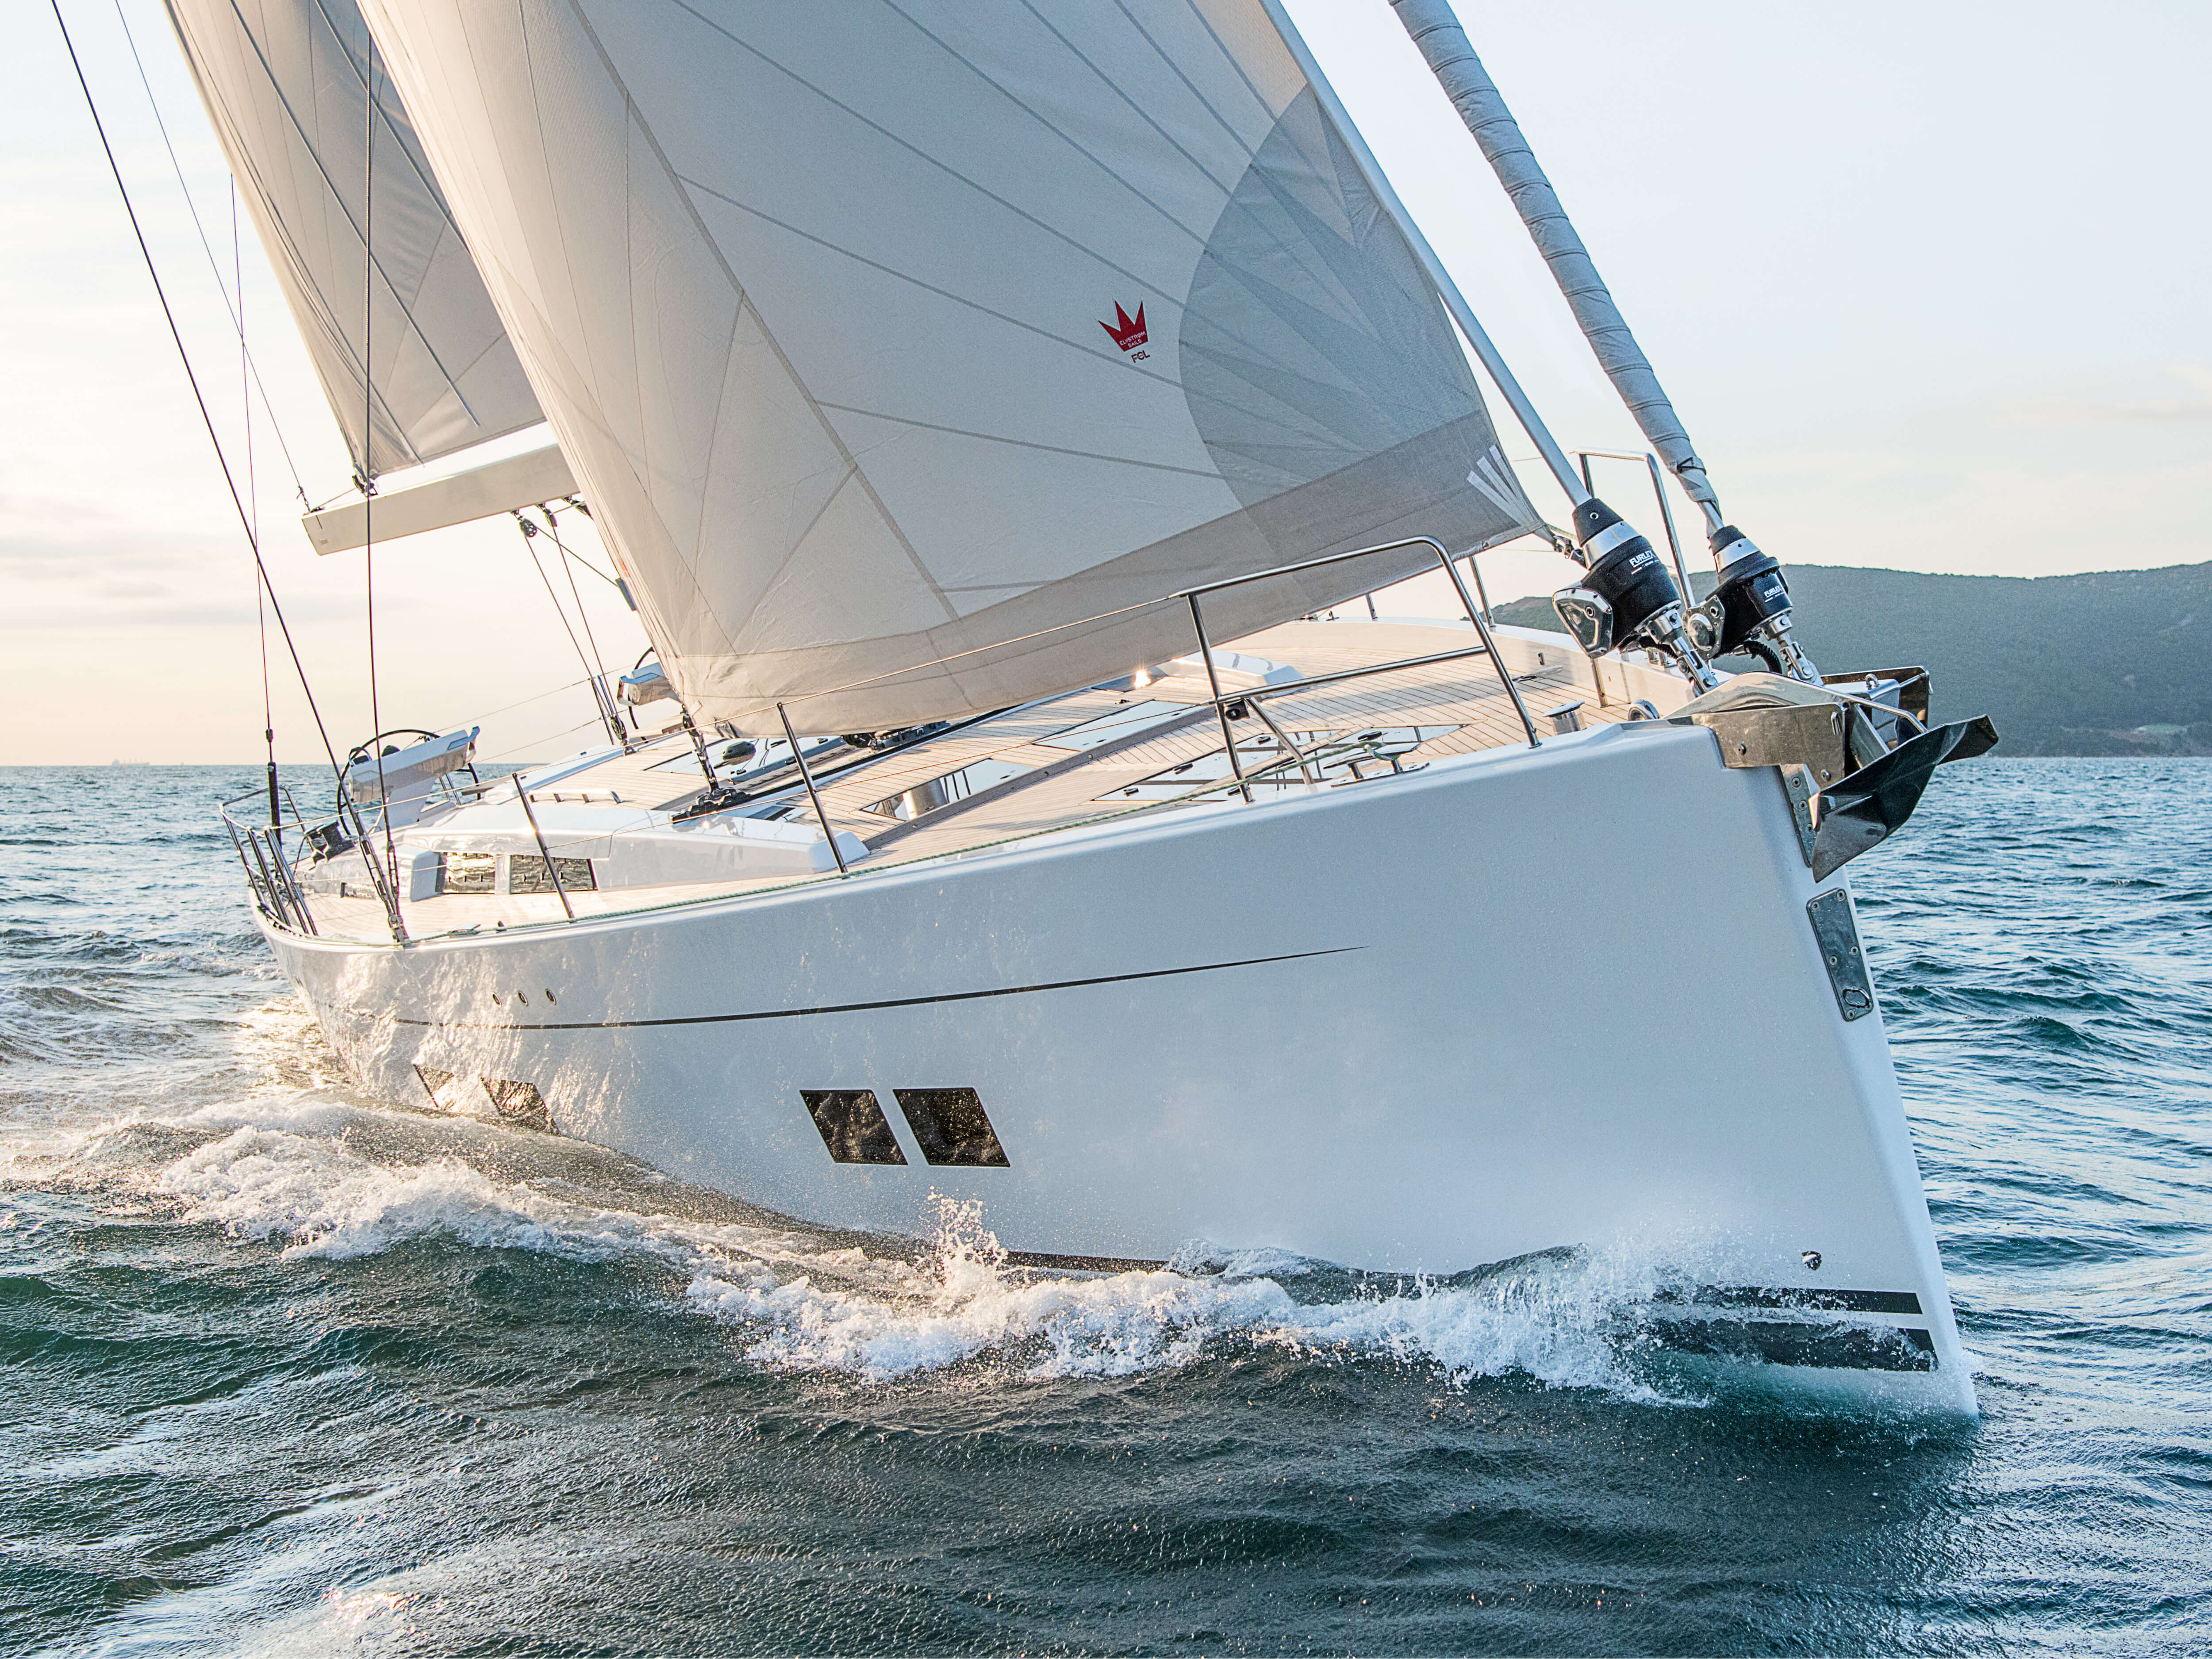 Hanse 588 Exterior Sailing | HANSE yachts amaze with their modern, functional design. Unique, puristic elegance meets exceptional performance from the pen of judel/vrolijk & co, the world's best and most experienced yacht designers. | Hanse